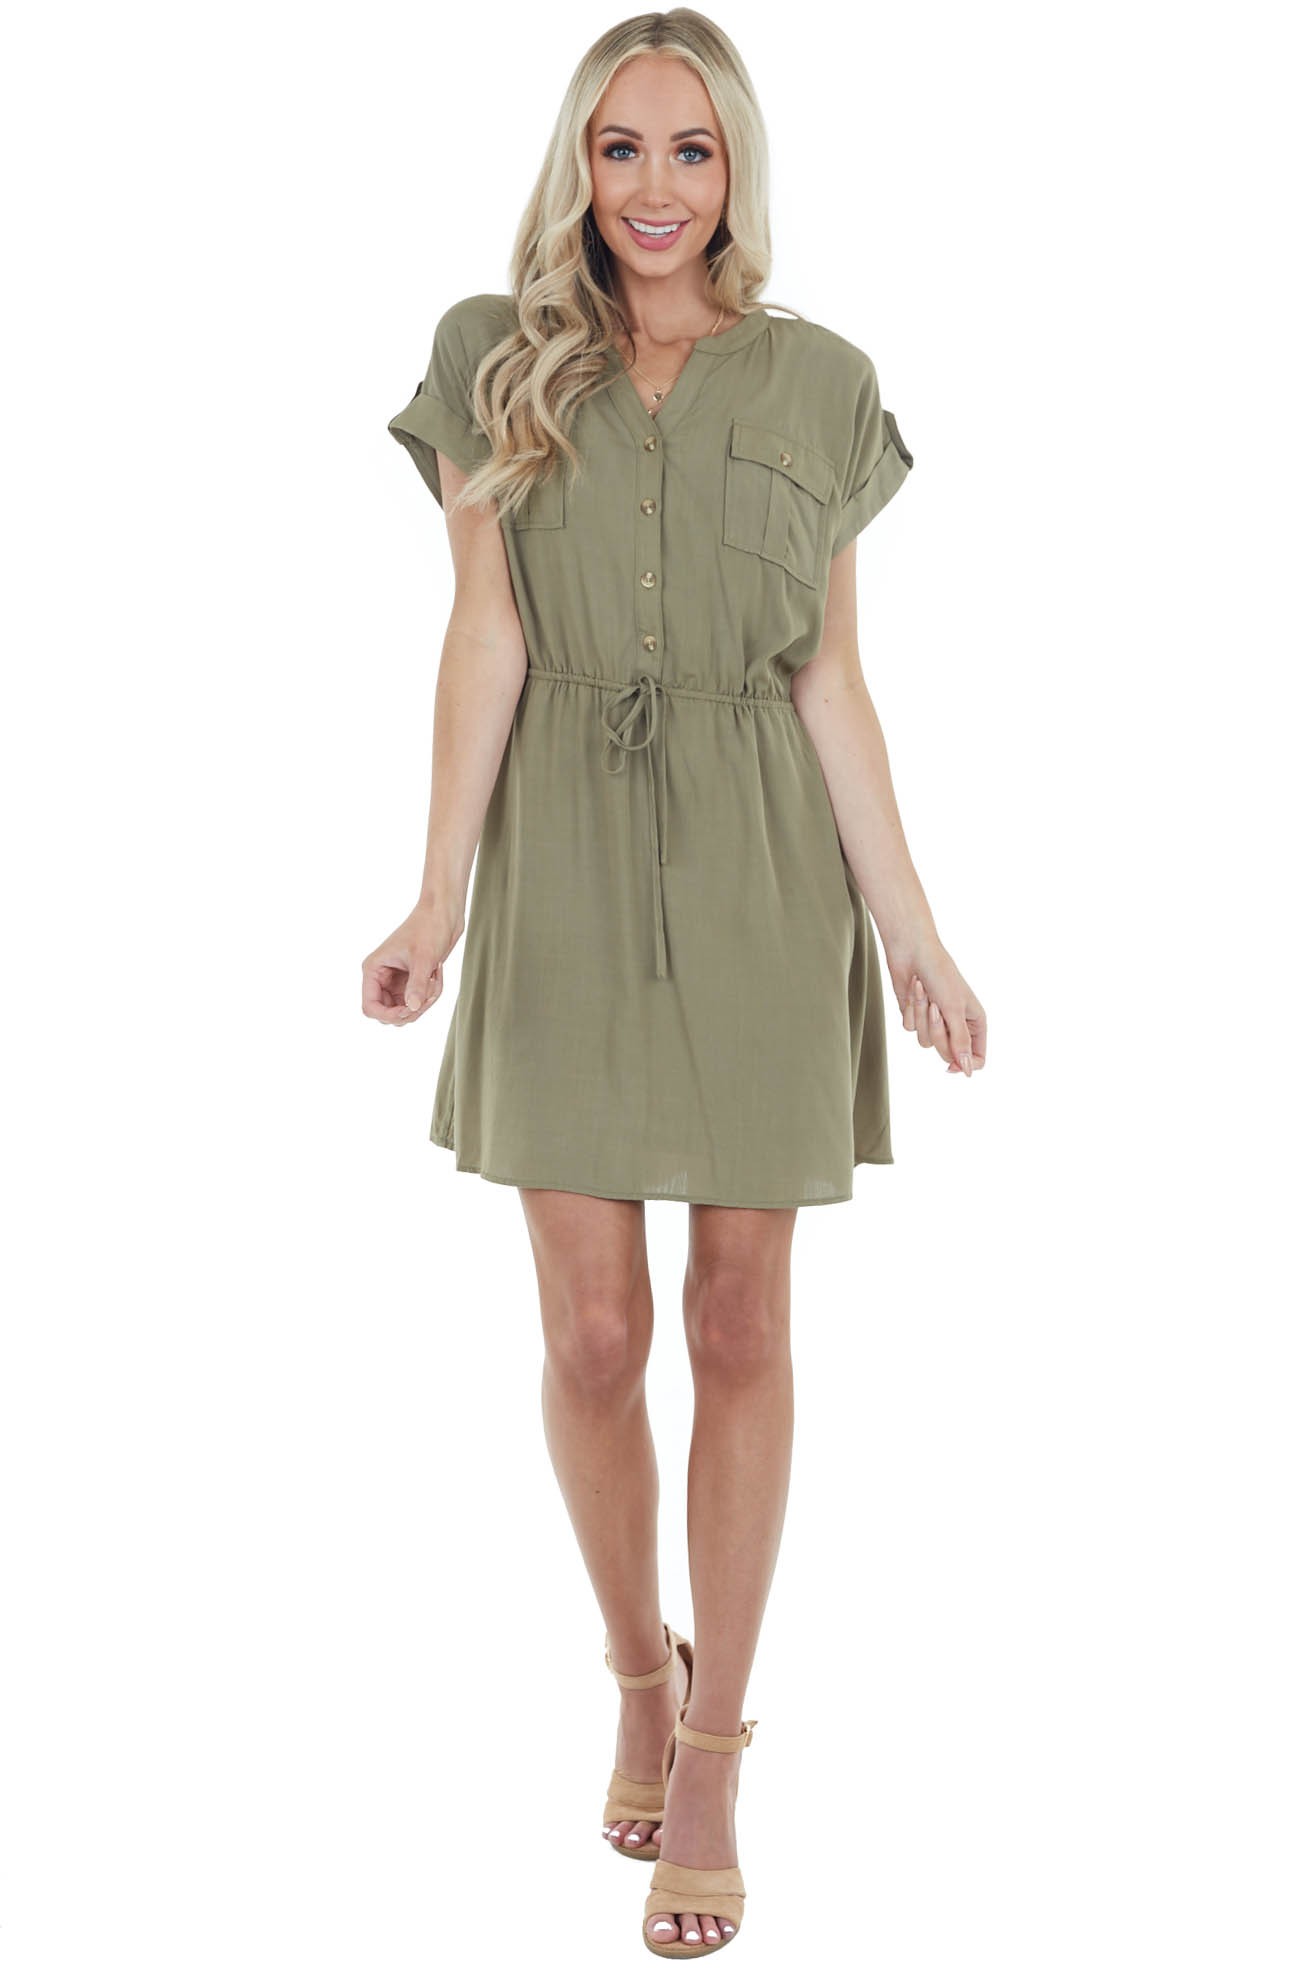 Olive Short Sleeve Button Down Dress with Chest Pockets